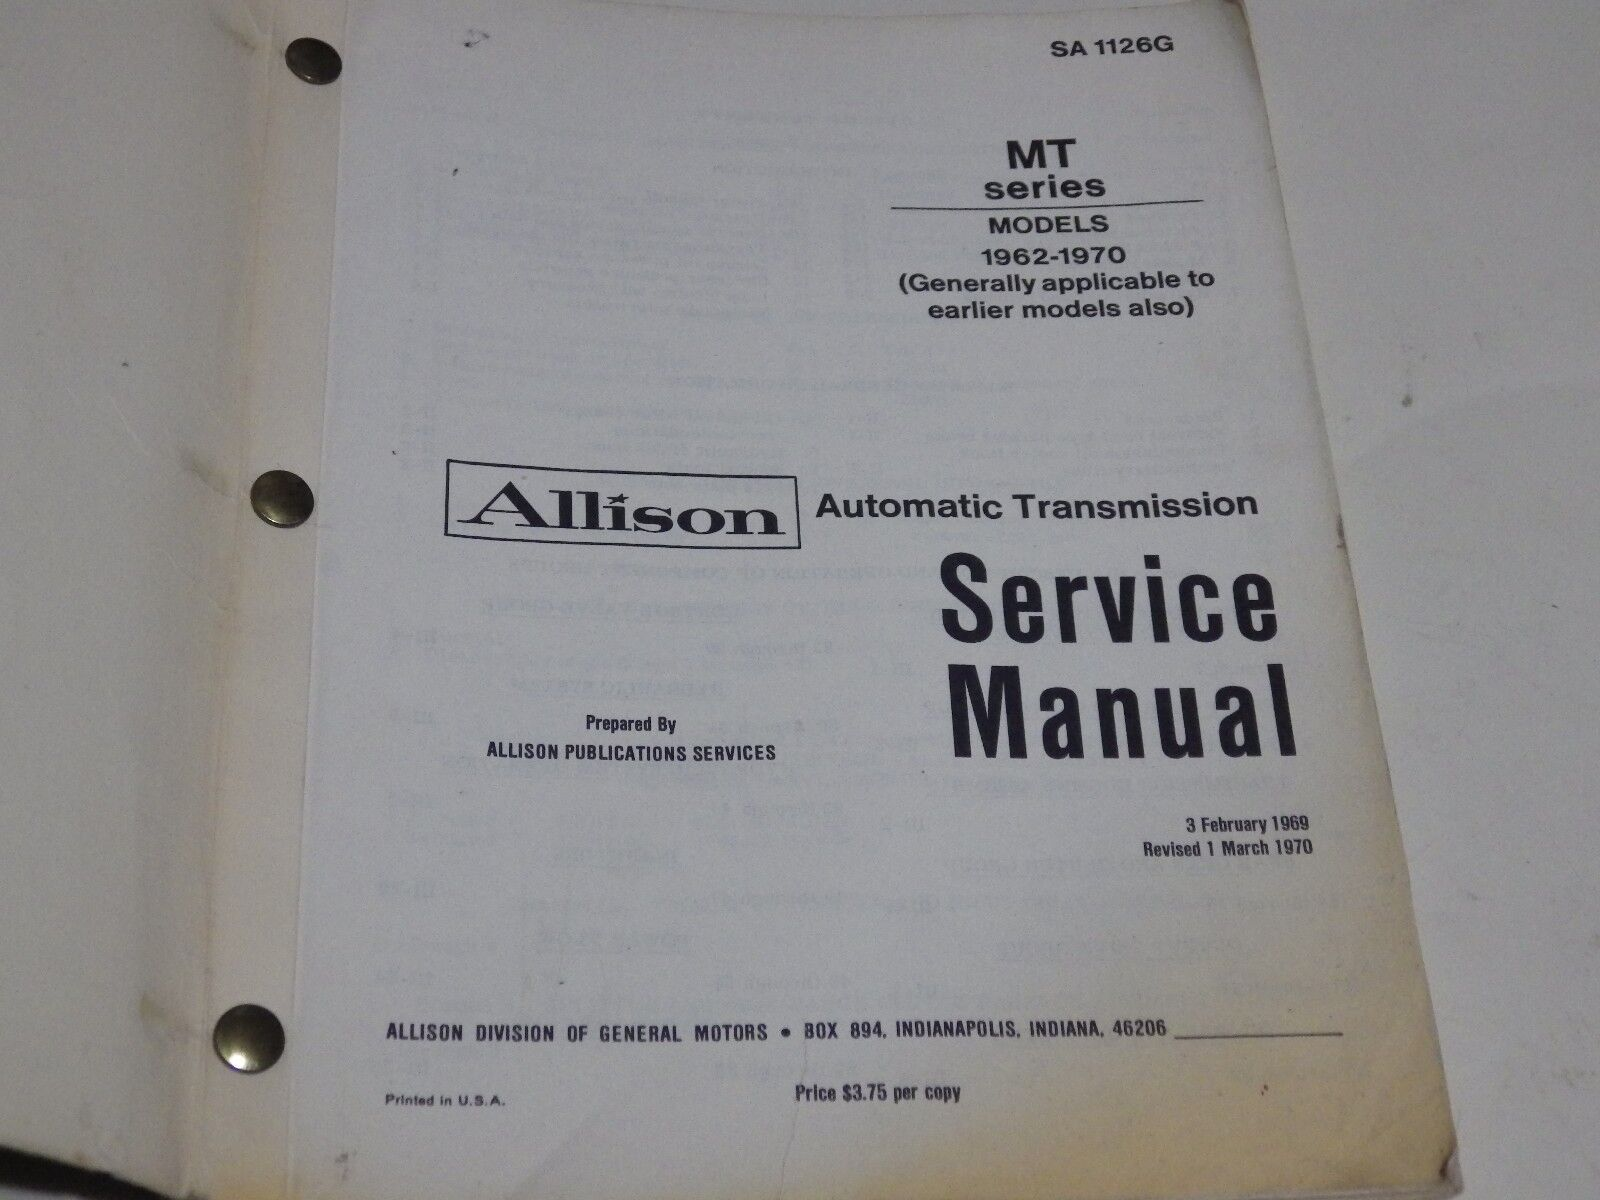 Allison Autmoatic Service Manuals Inncom E528 Wiring Diagram Room Array Mt Series Models Automatic Transmission Manual 1962 Rh Ebay Com